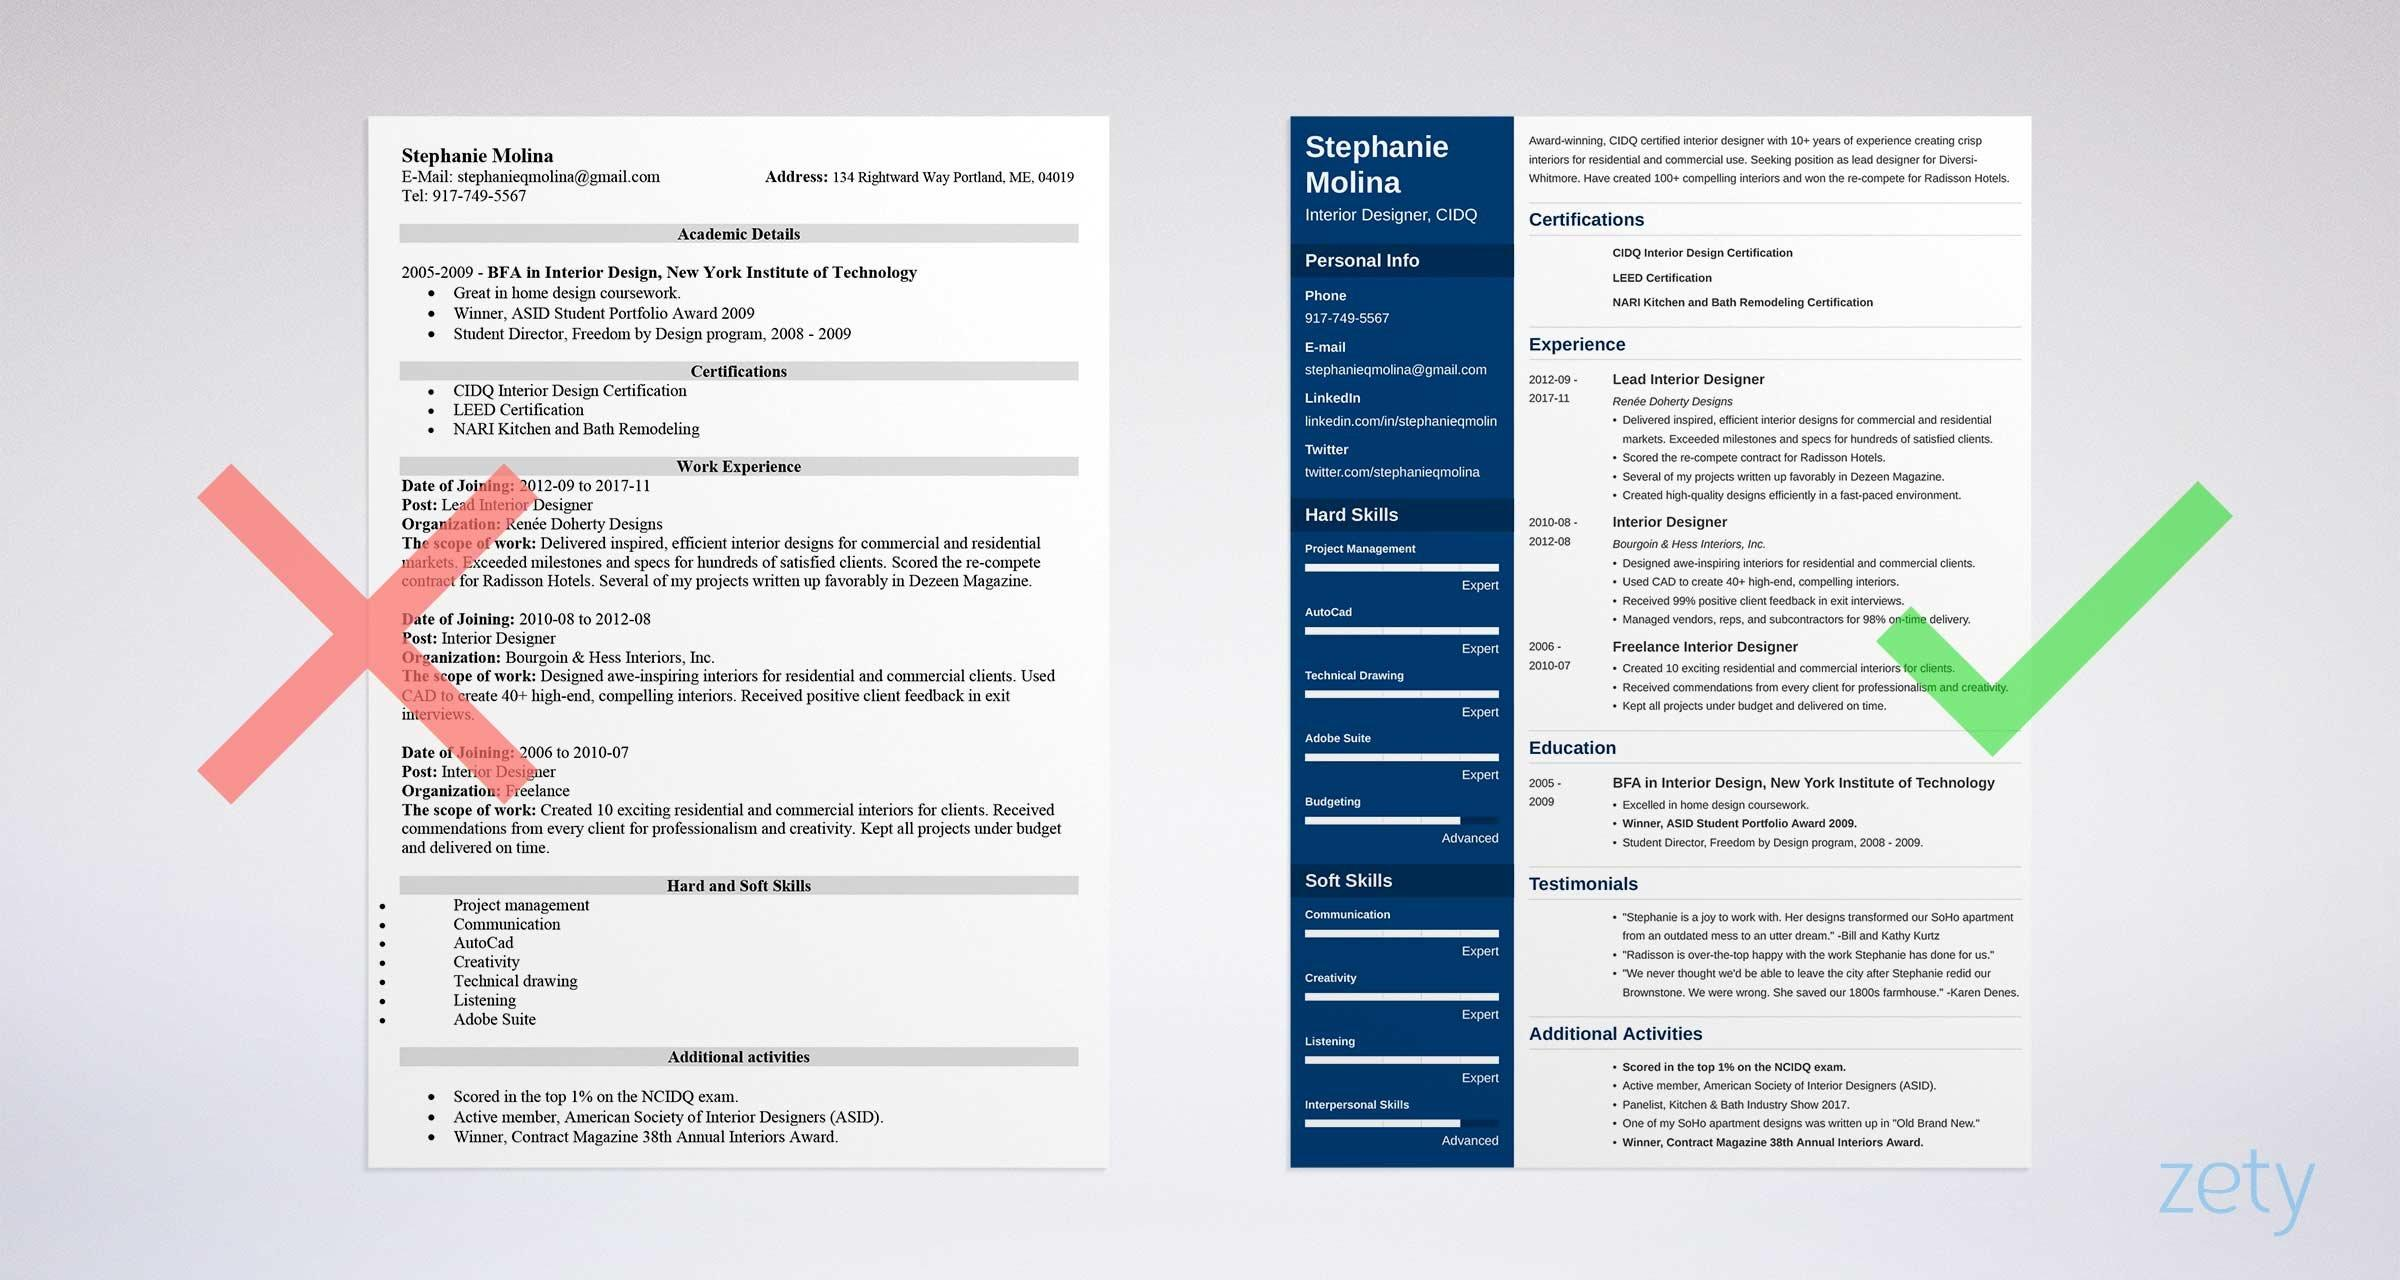 24 Stunning Where Can I Get Free Resume Templates for Graphics